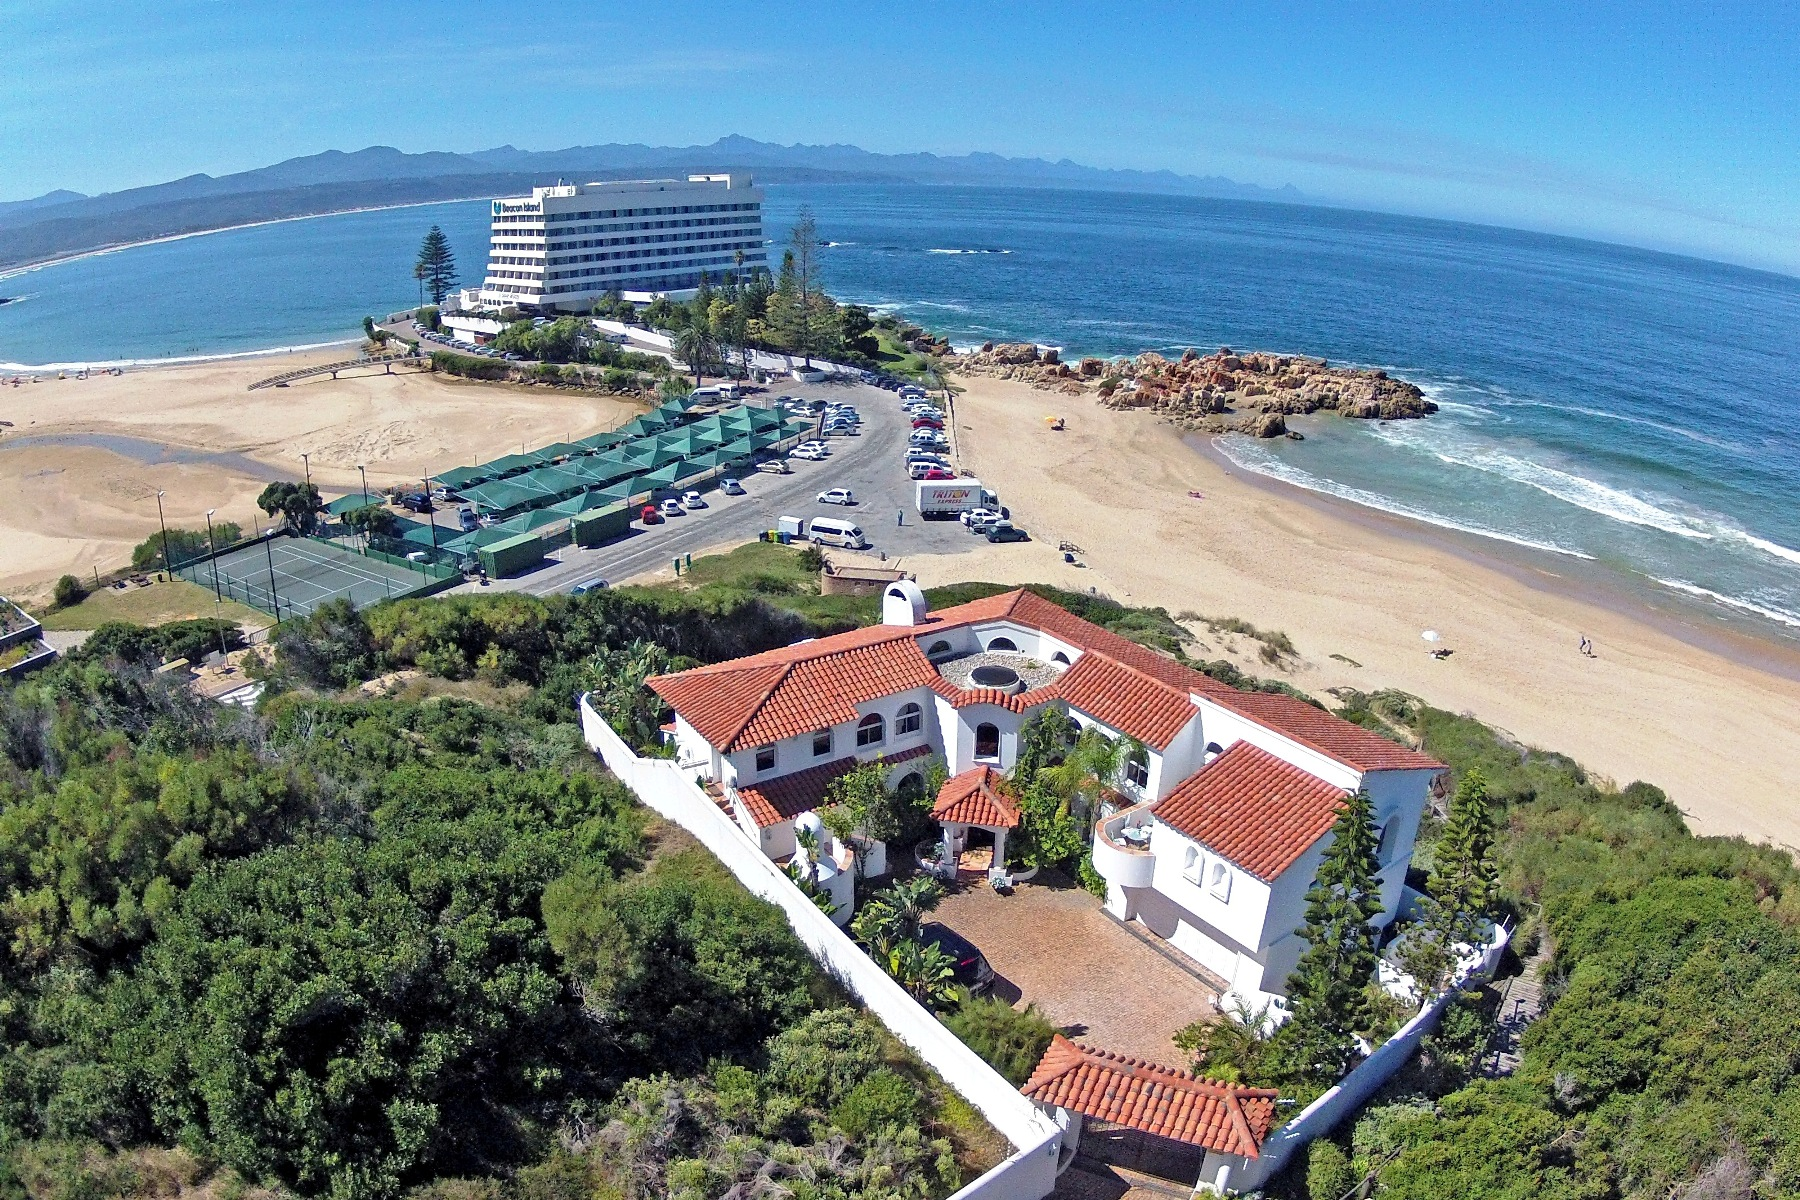 Maison unifamiliale pour l Vente à Beachfront Beachy Head Drive Home Plettenberg Bay, Cap-Occidental, 6600 Afrique Du Sud